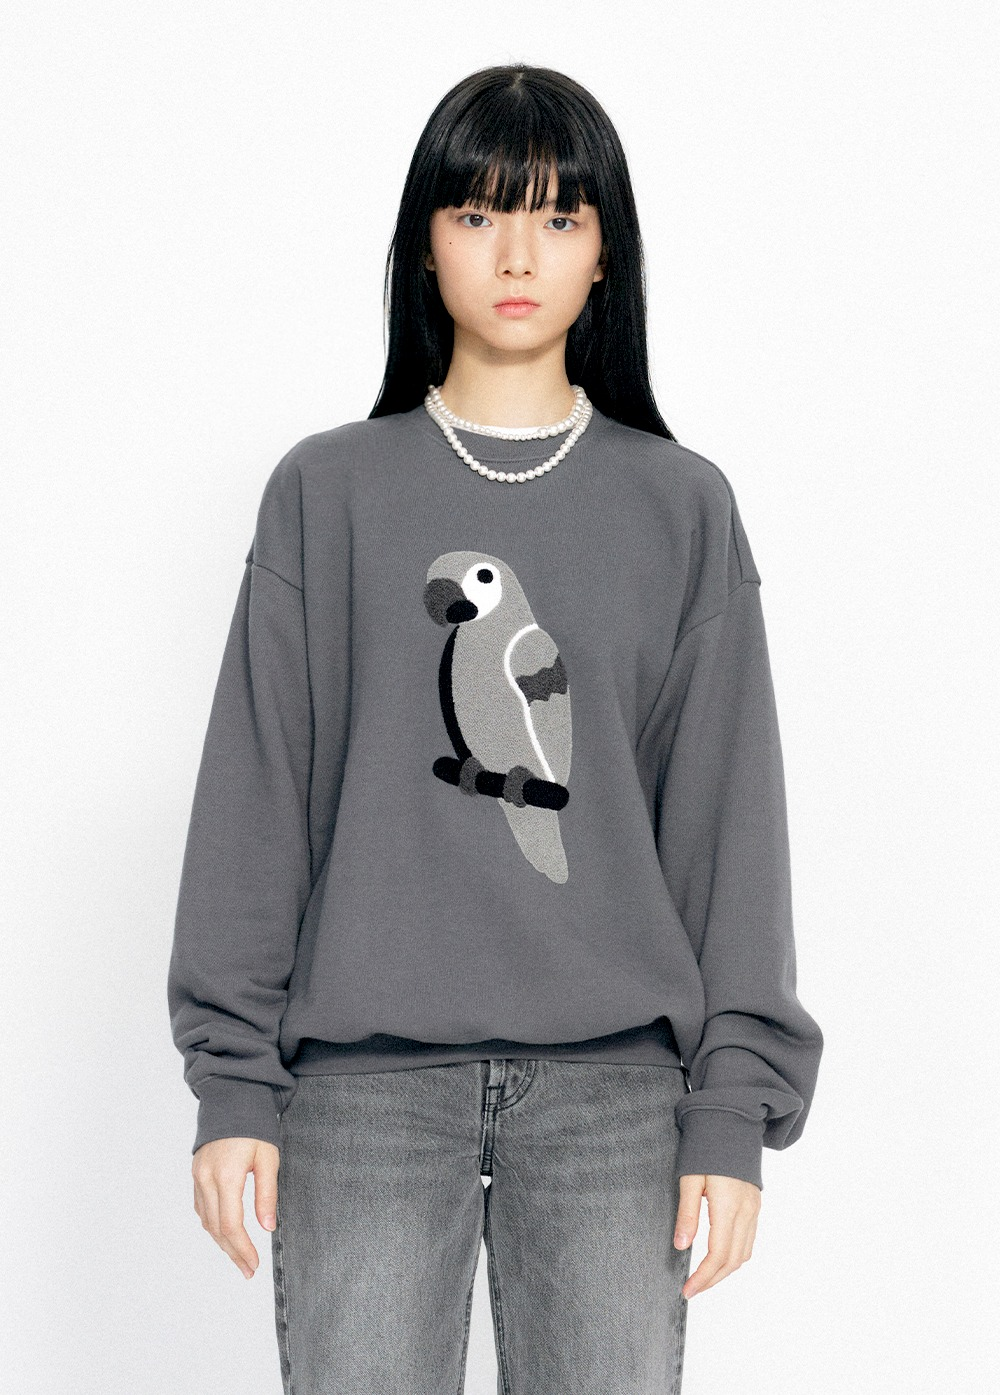 KANCO FULL LOGO SWEATSHIRT charcoal